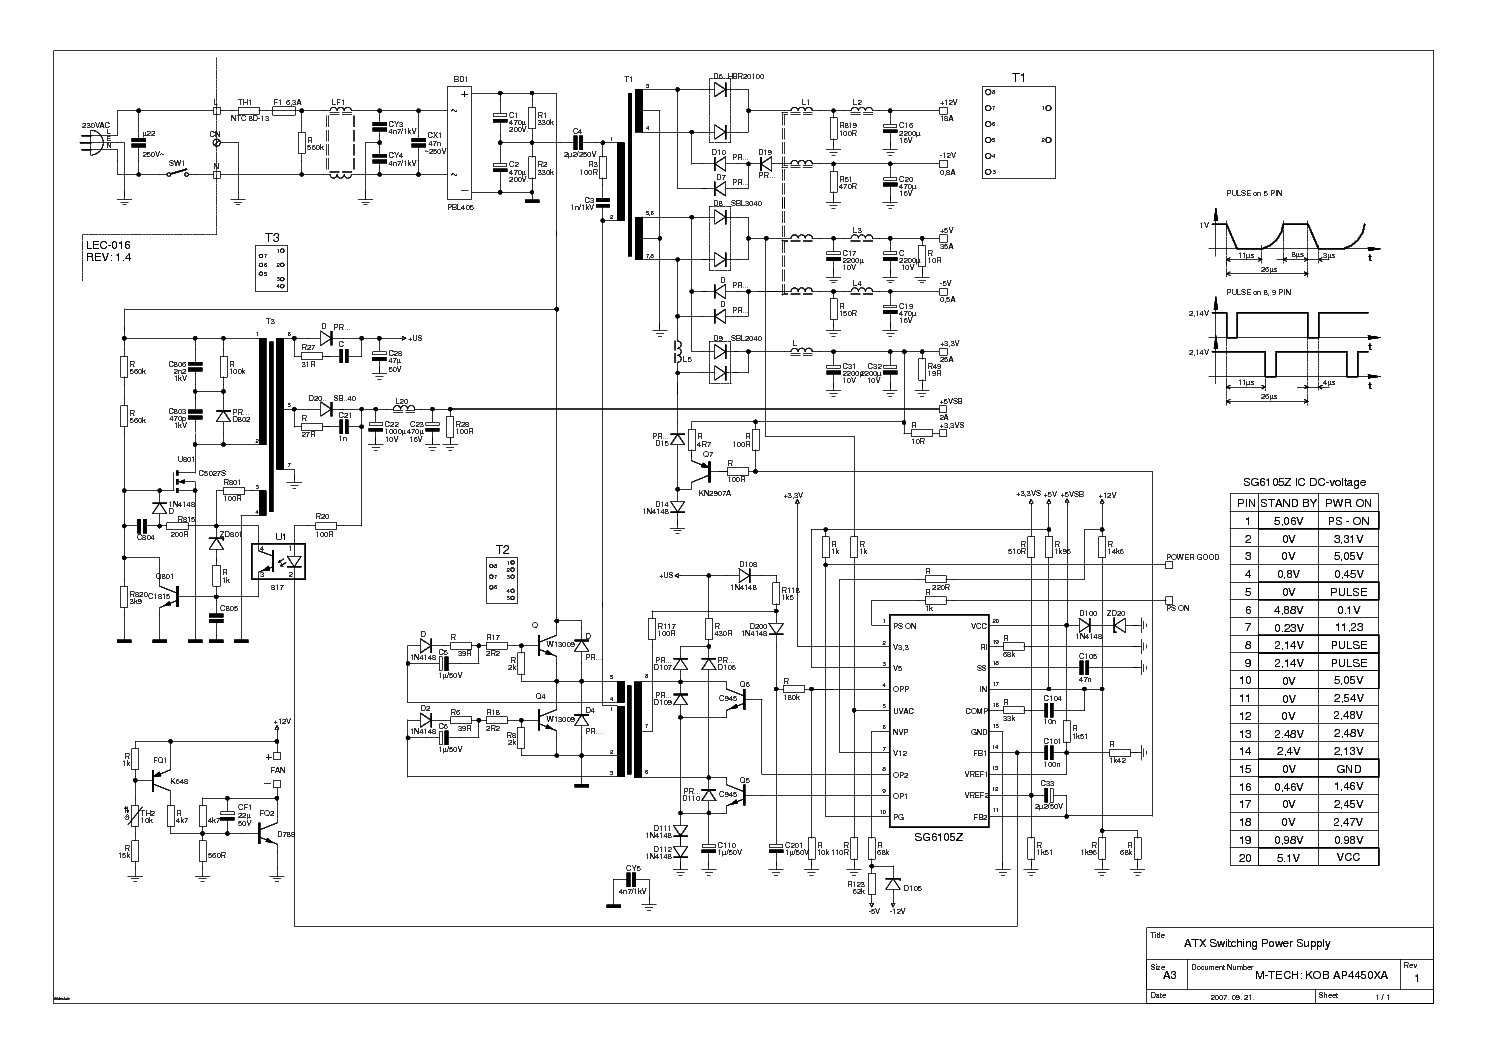 hight resolution of atx power supply schematic w jpg similiar atx power supply wiring diagram keywords 1489 x 1053